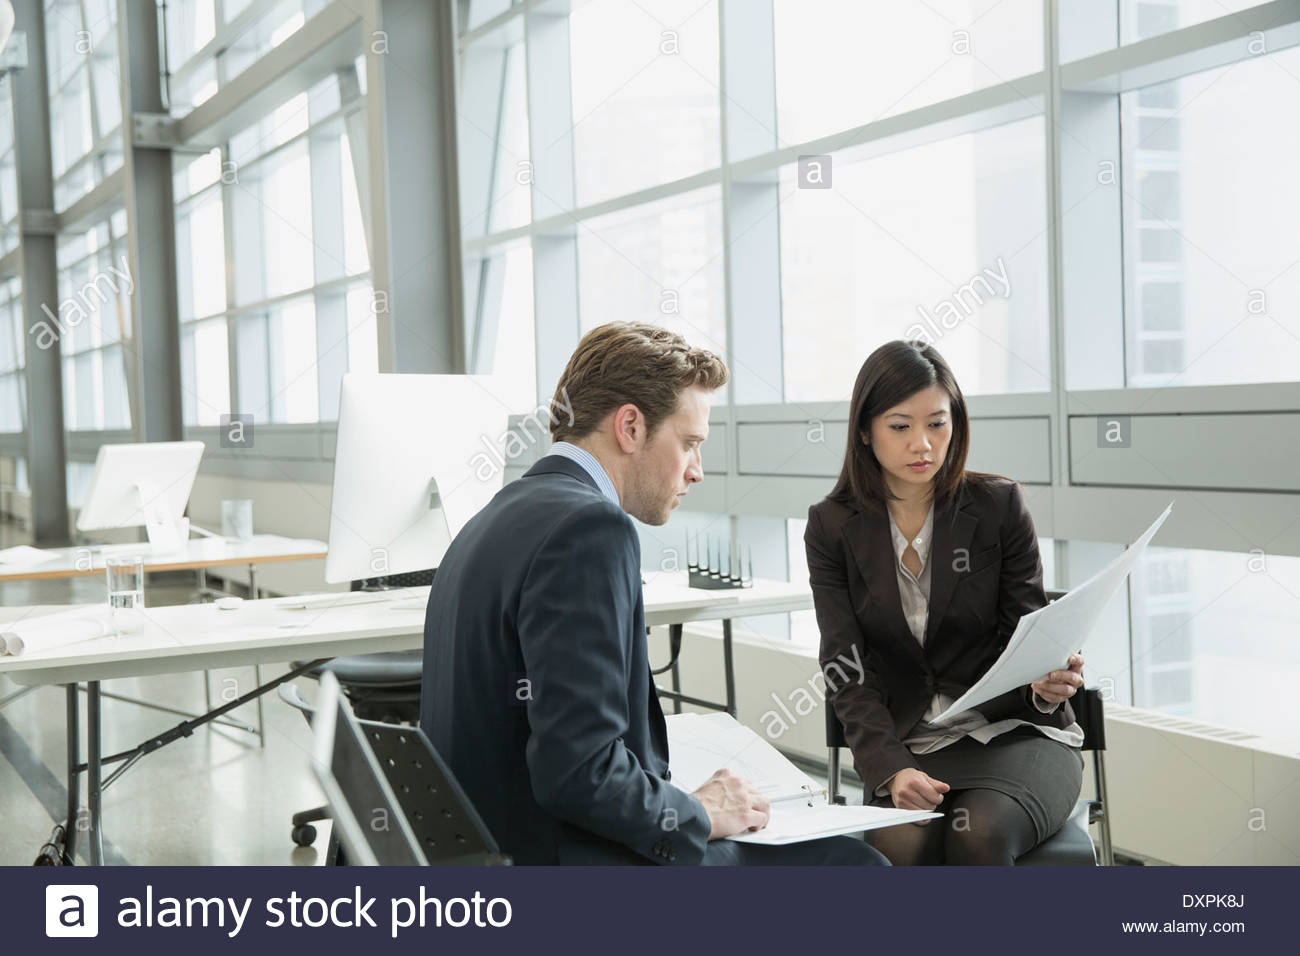 Business people reviewing paperwork in office - Stock Image